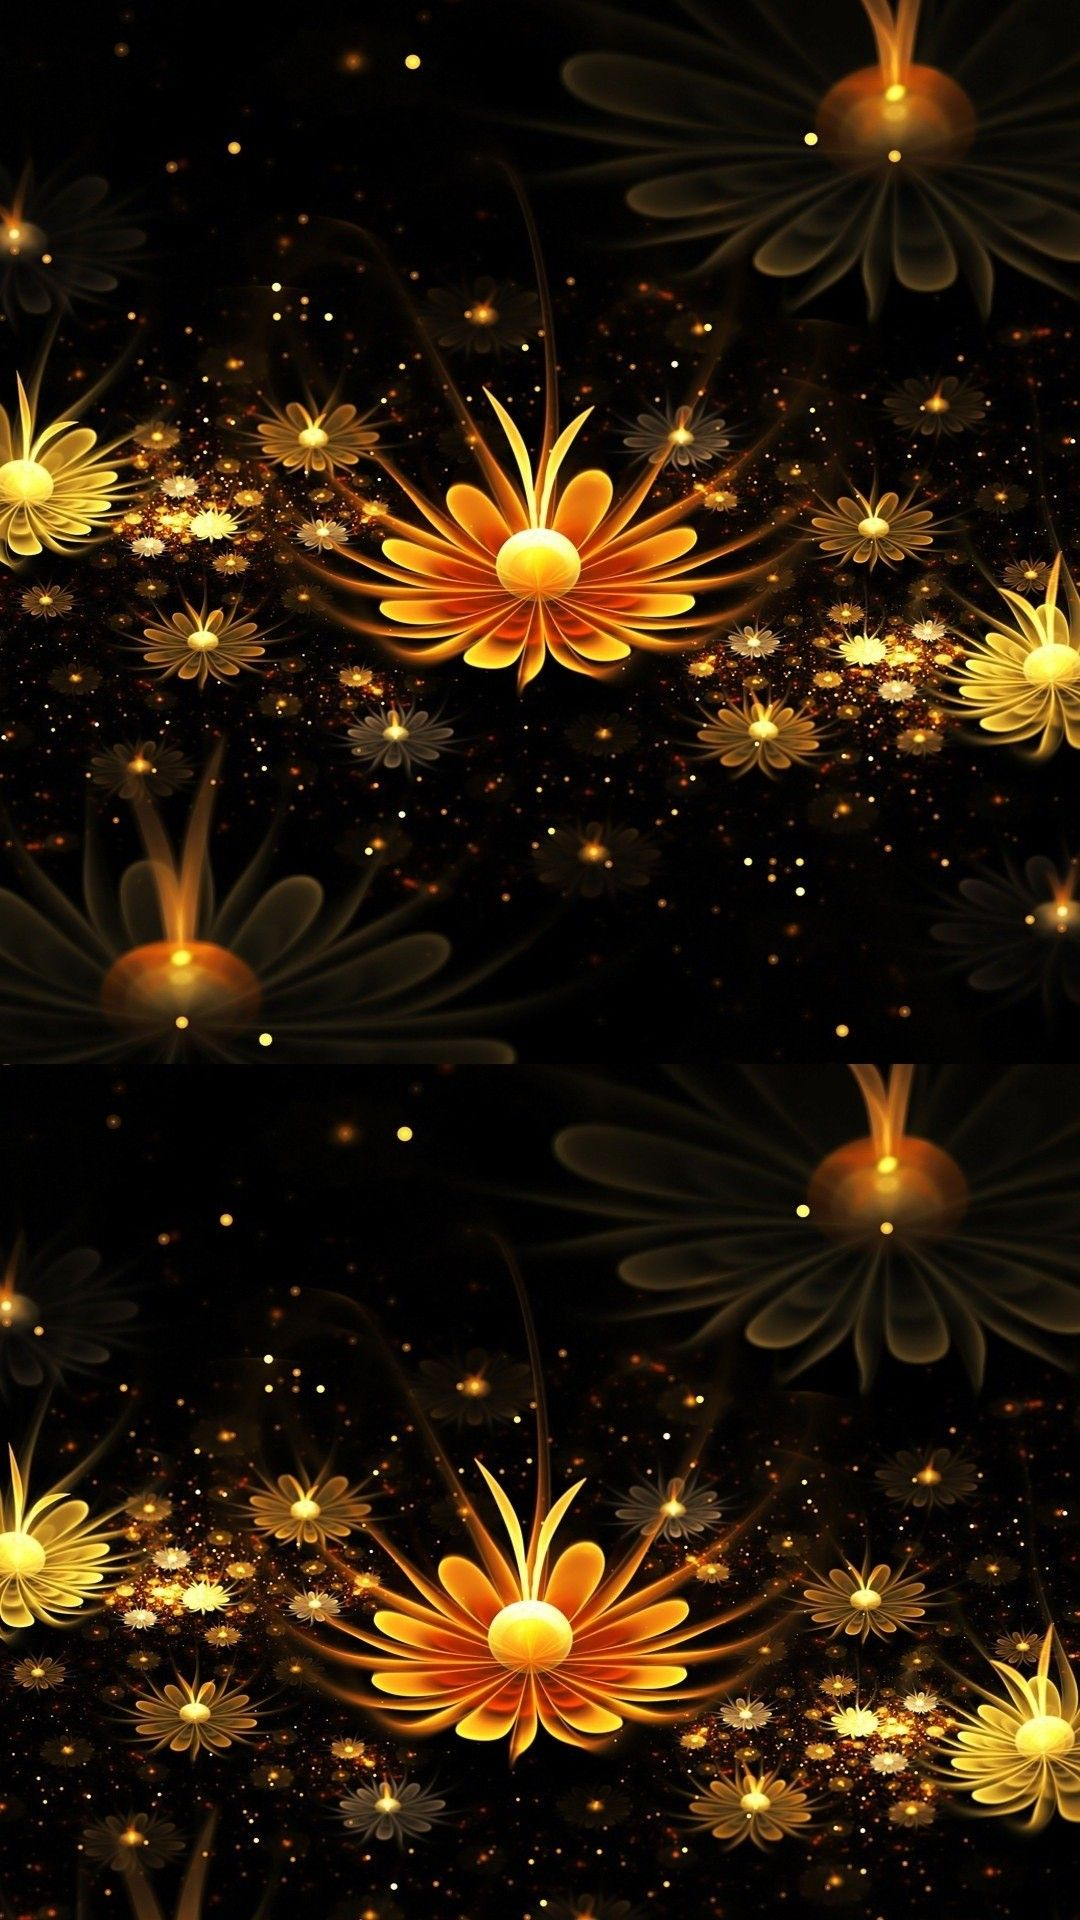 3d Flower Wallpaper For Mobile Android Beautiful Wallpaper Hd Android Phone Wallpaper Mobile Wallpaper Android